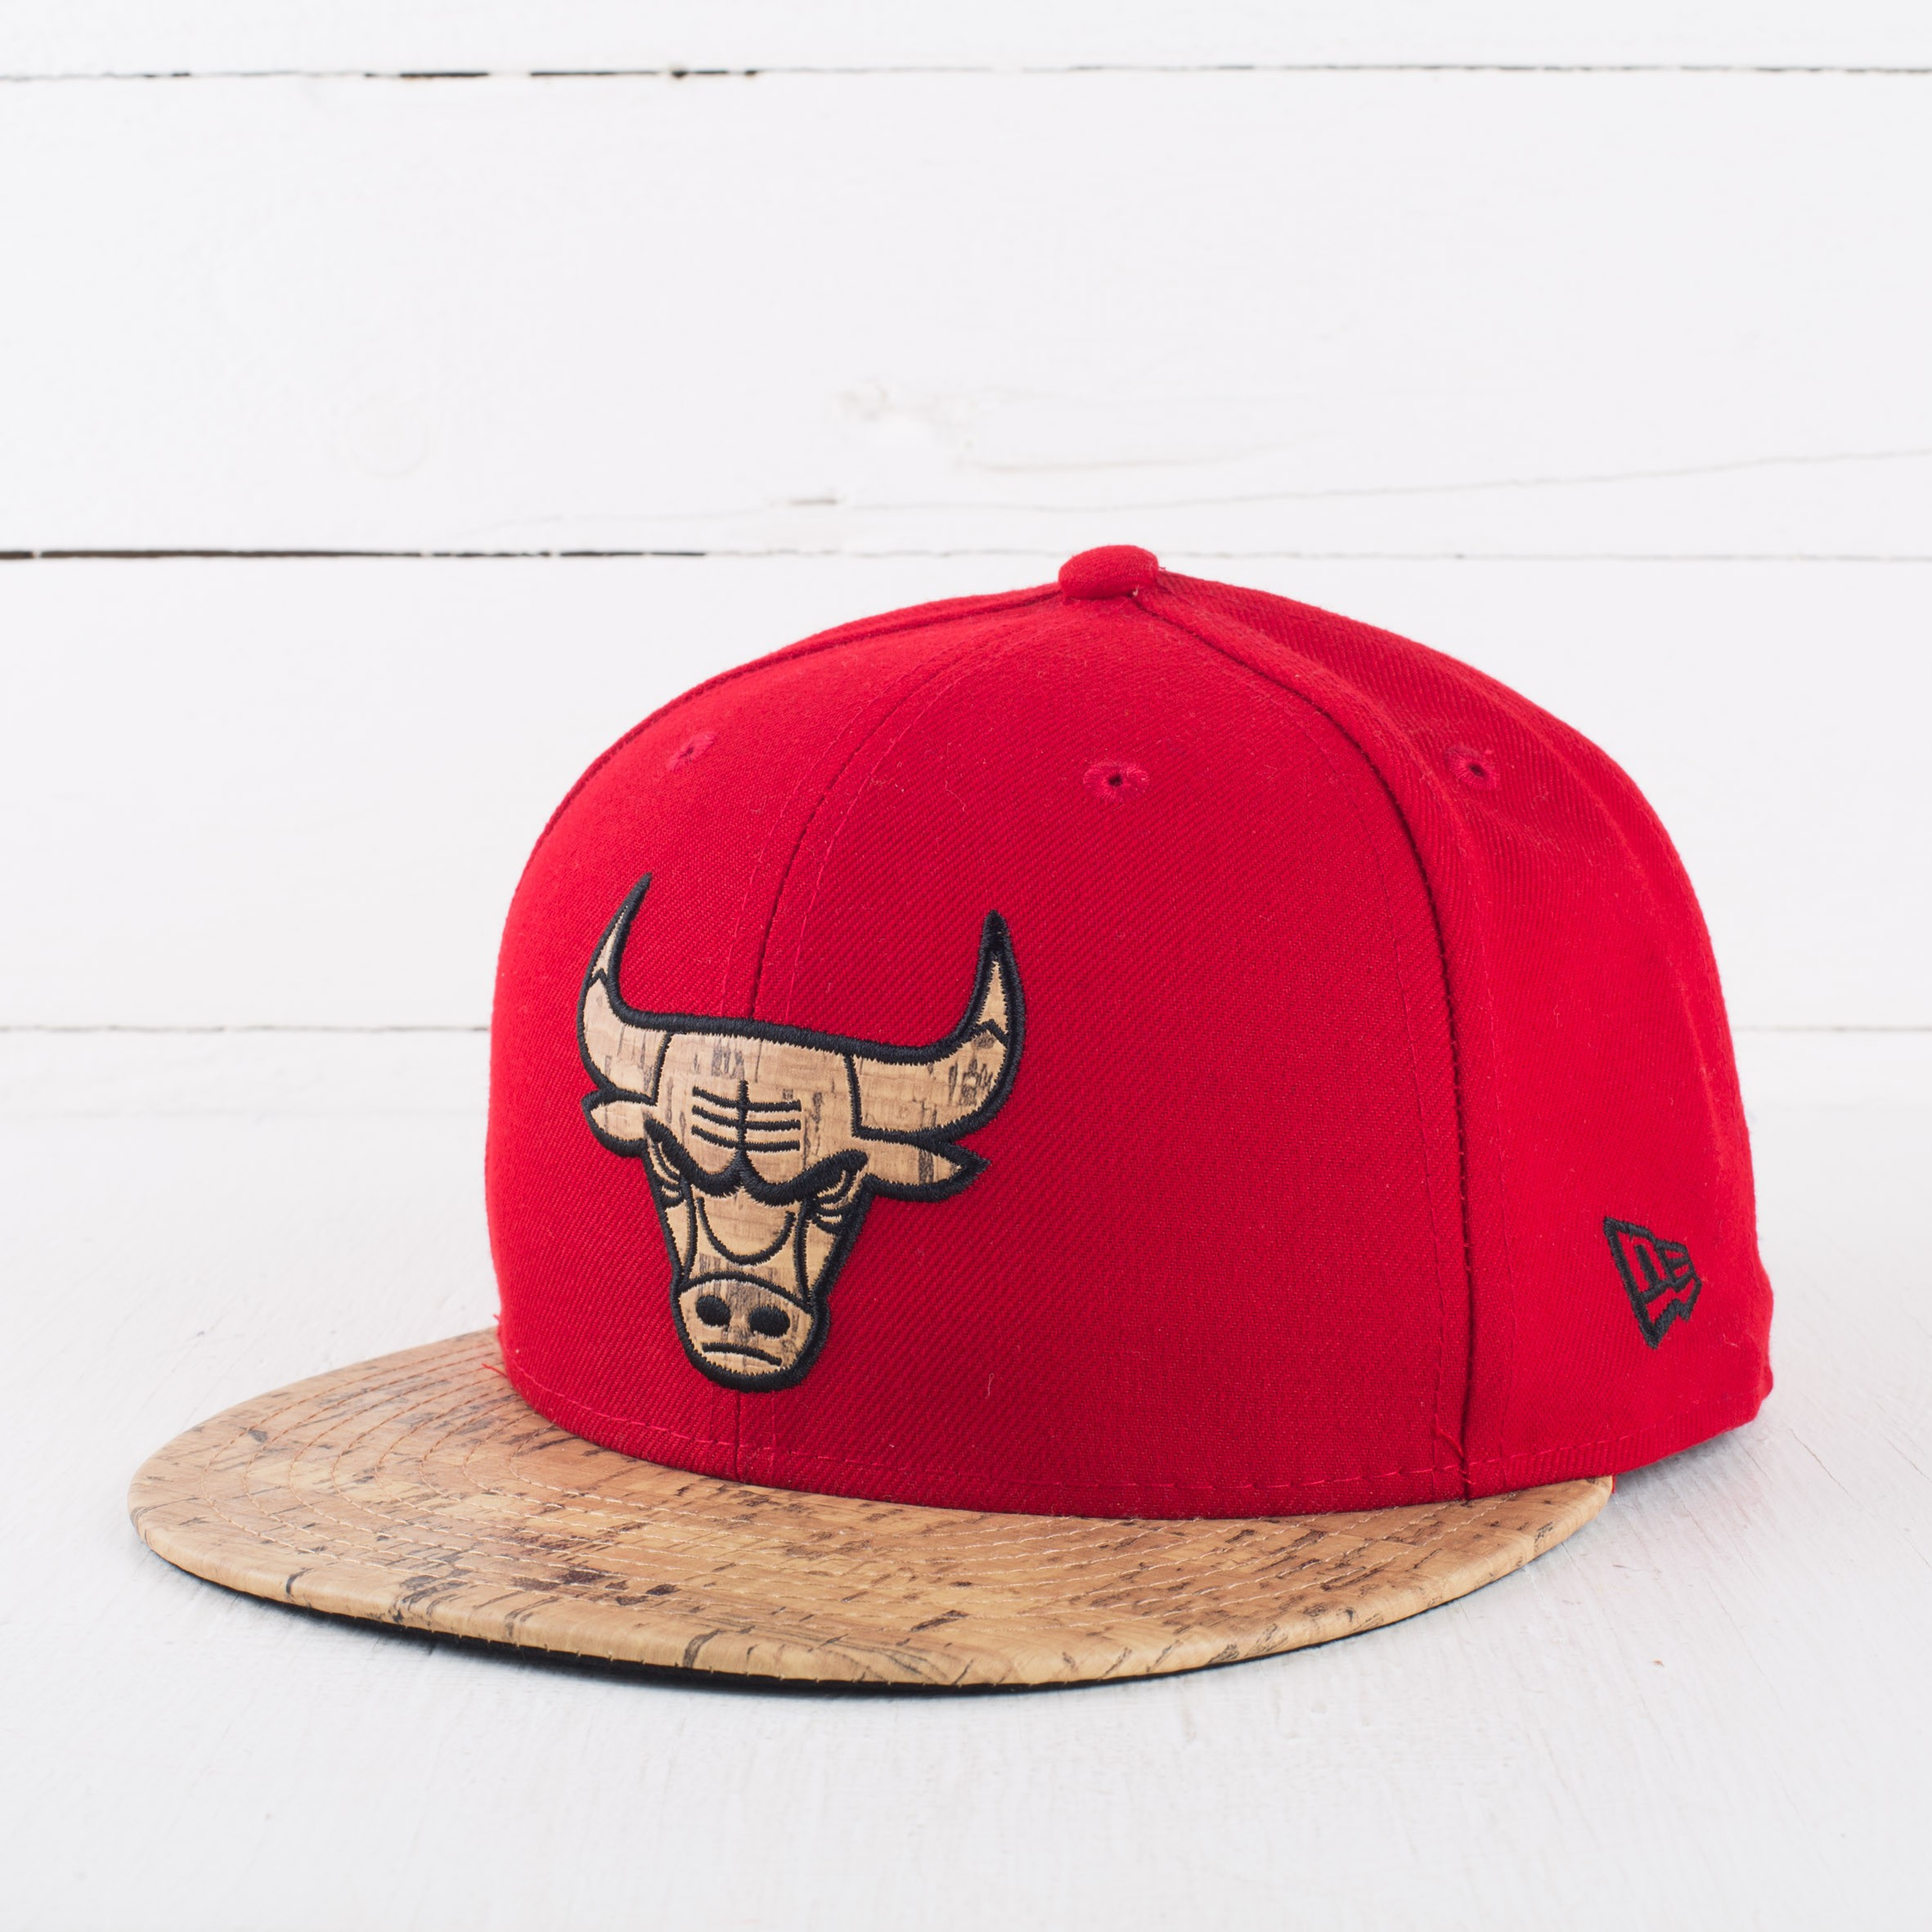 New Era 59FIFTY Fitted Cork Chicago Bulls Red  2cec186ee5a